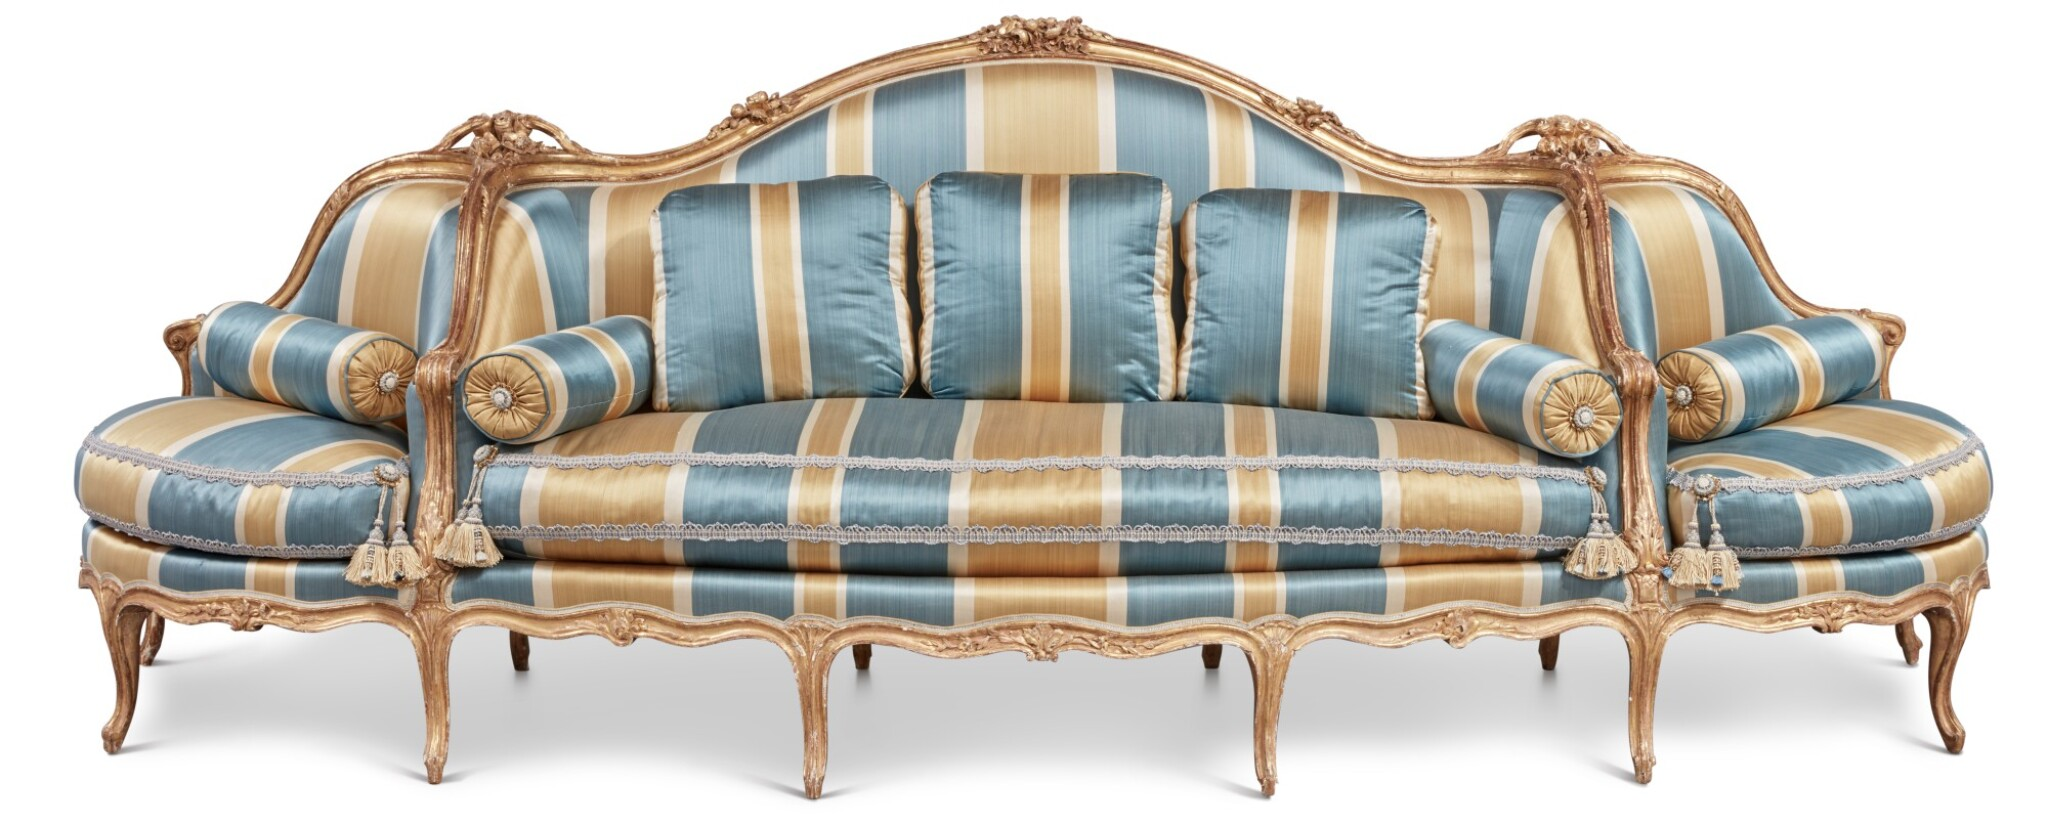 View full screen - View 1 of Lot 64. A Louis XV Carved Giltwood Canapé à Confidents, Mid-18th Century.